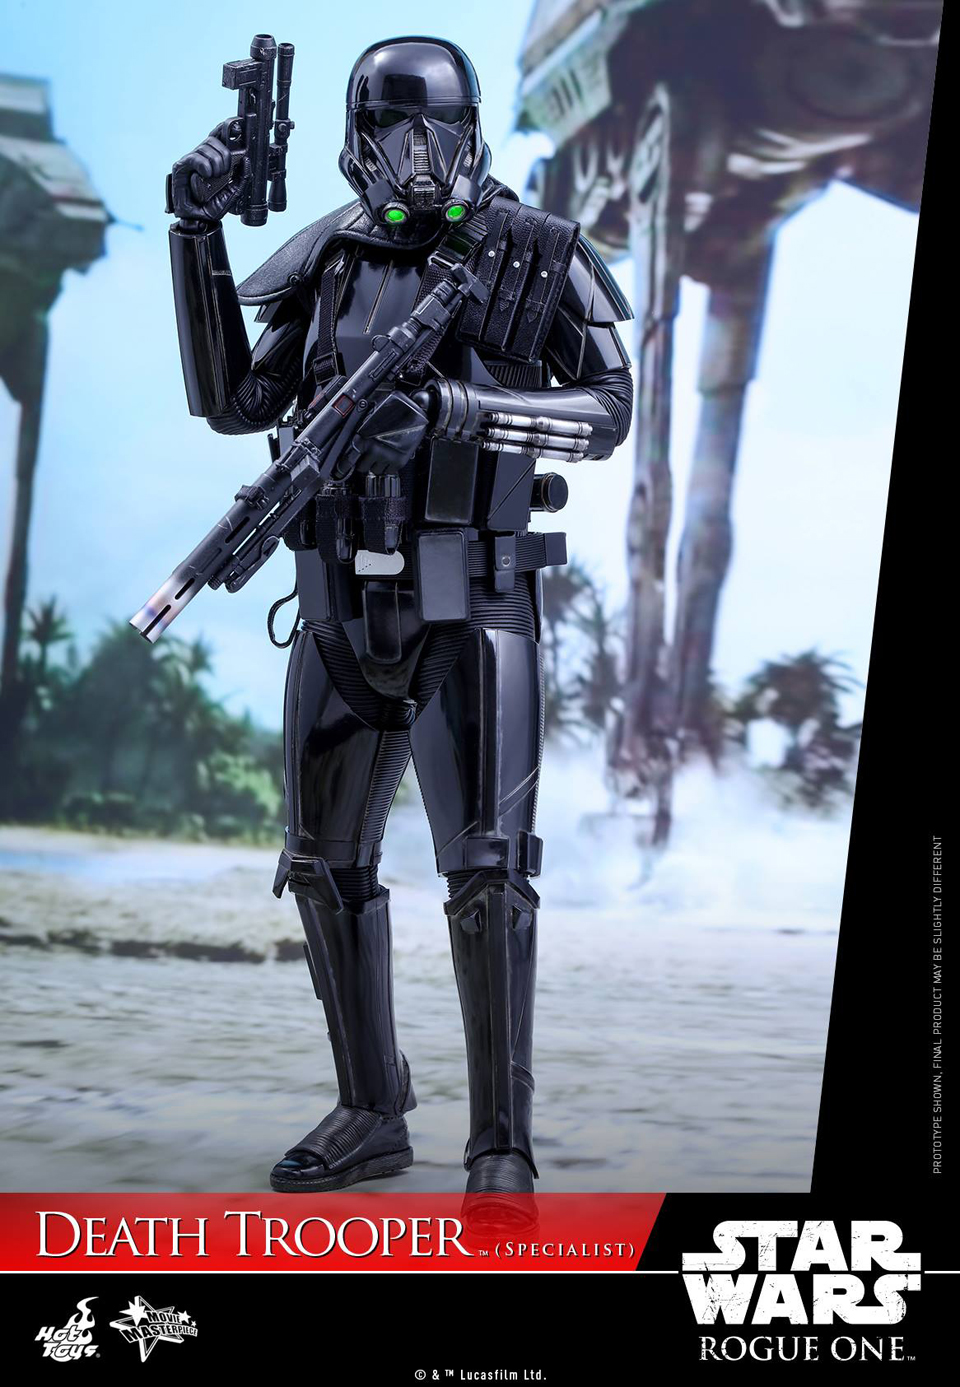 Hot Toys Star Wars Rogue One Specialist Death Trooper 1/6 Scale Action Figure